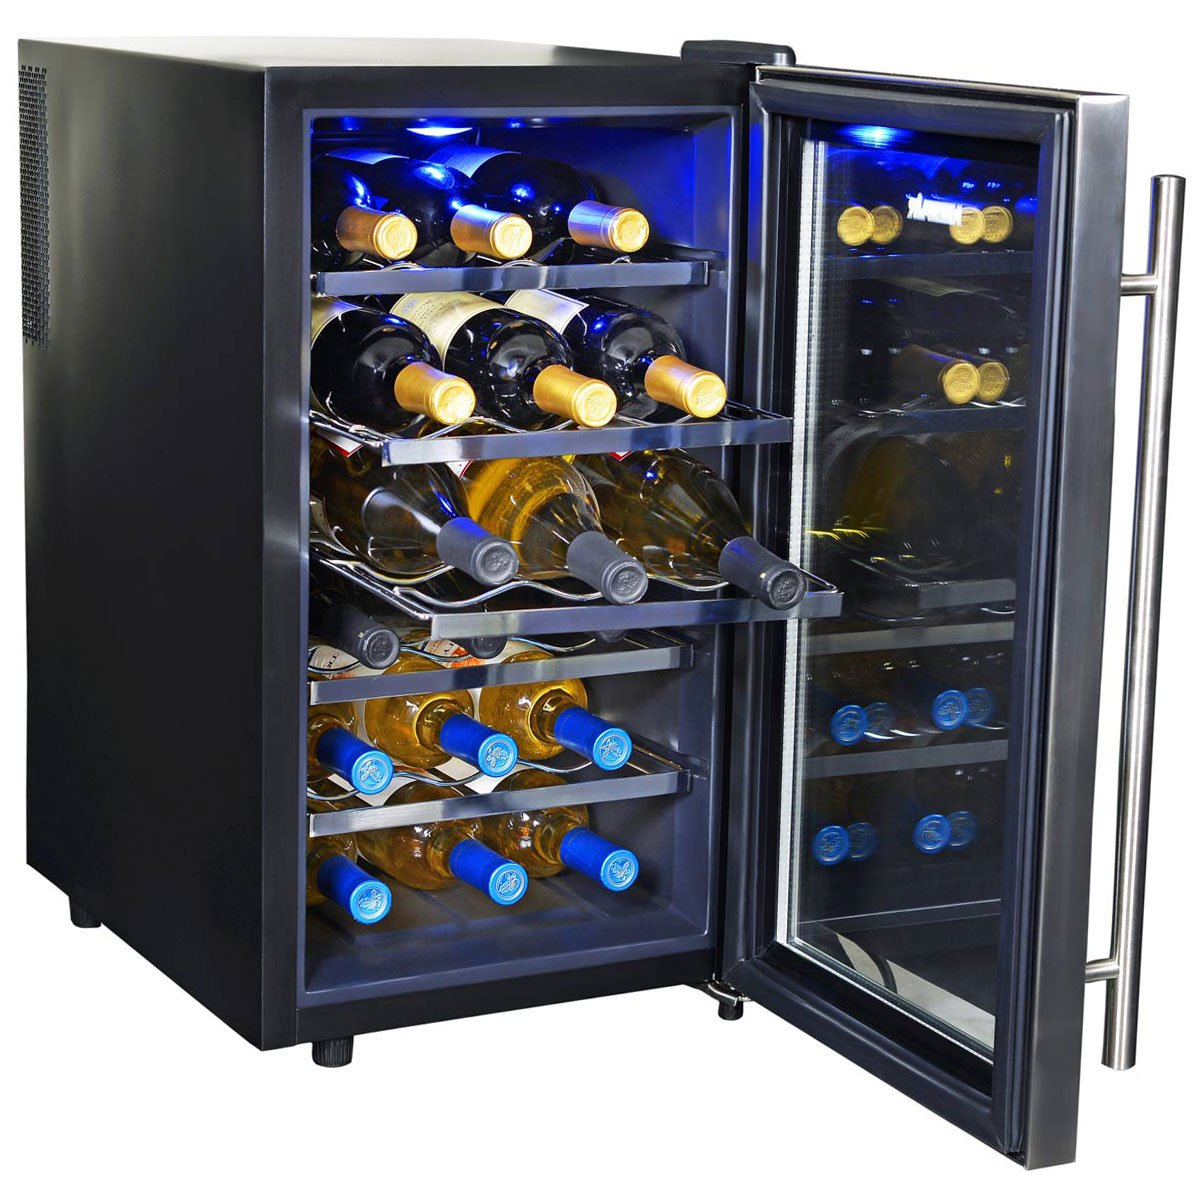 NewAir AW-181E 18 Bottle Thermoelectric Wine Cooler, Black by NewAir (Image #13)